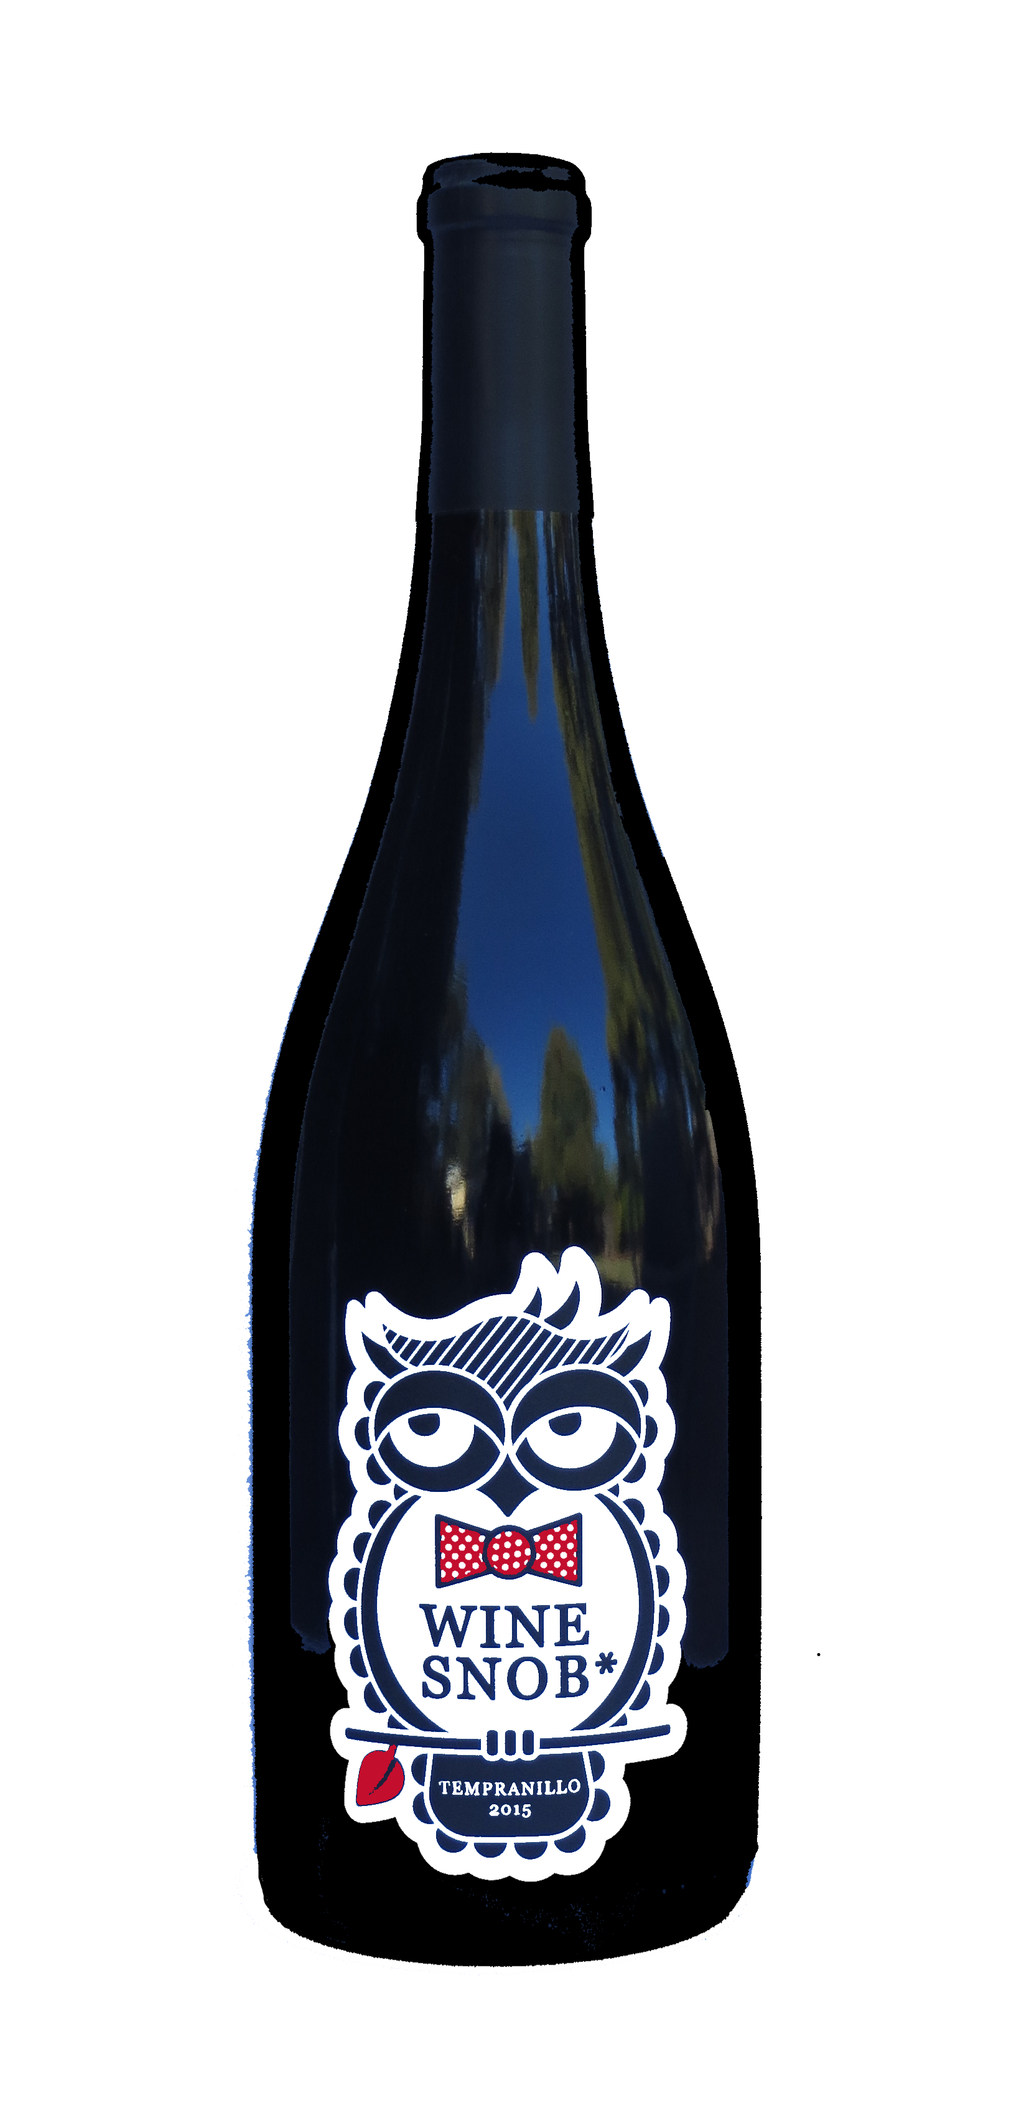 Burgundy-style bottle with the Wine Snob* 2015 Tempranillo label showing an owl perched on a stick with a leaf, slightly rolling its eyes, and wearing a red bowtie with white polka dots.